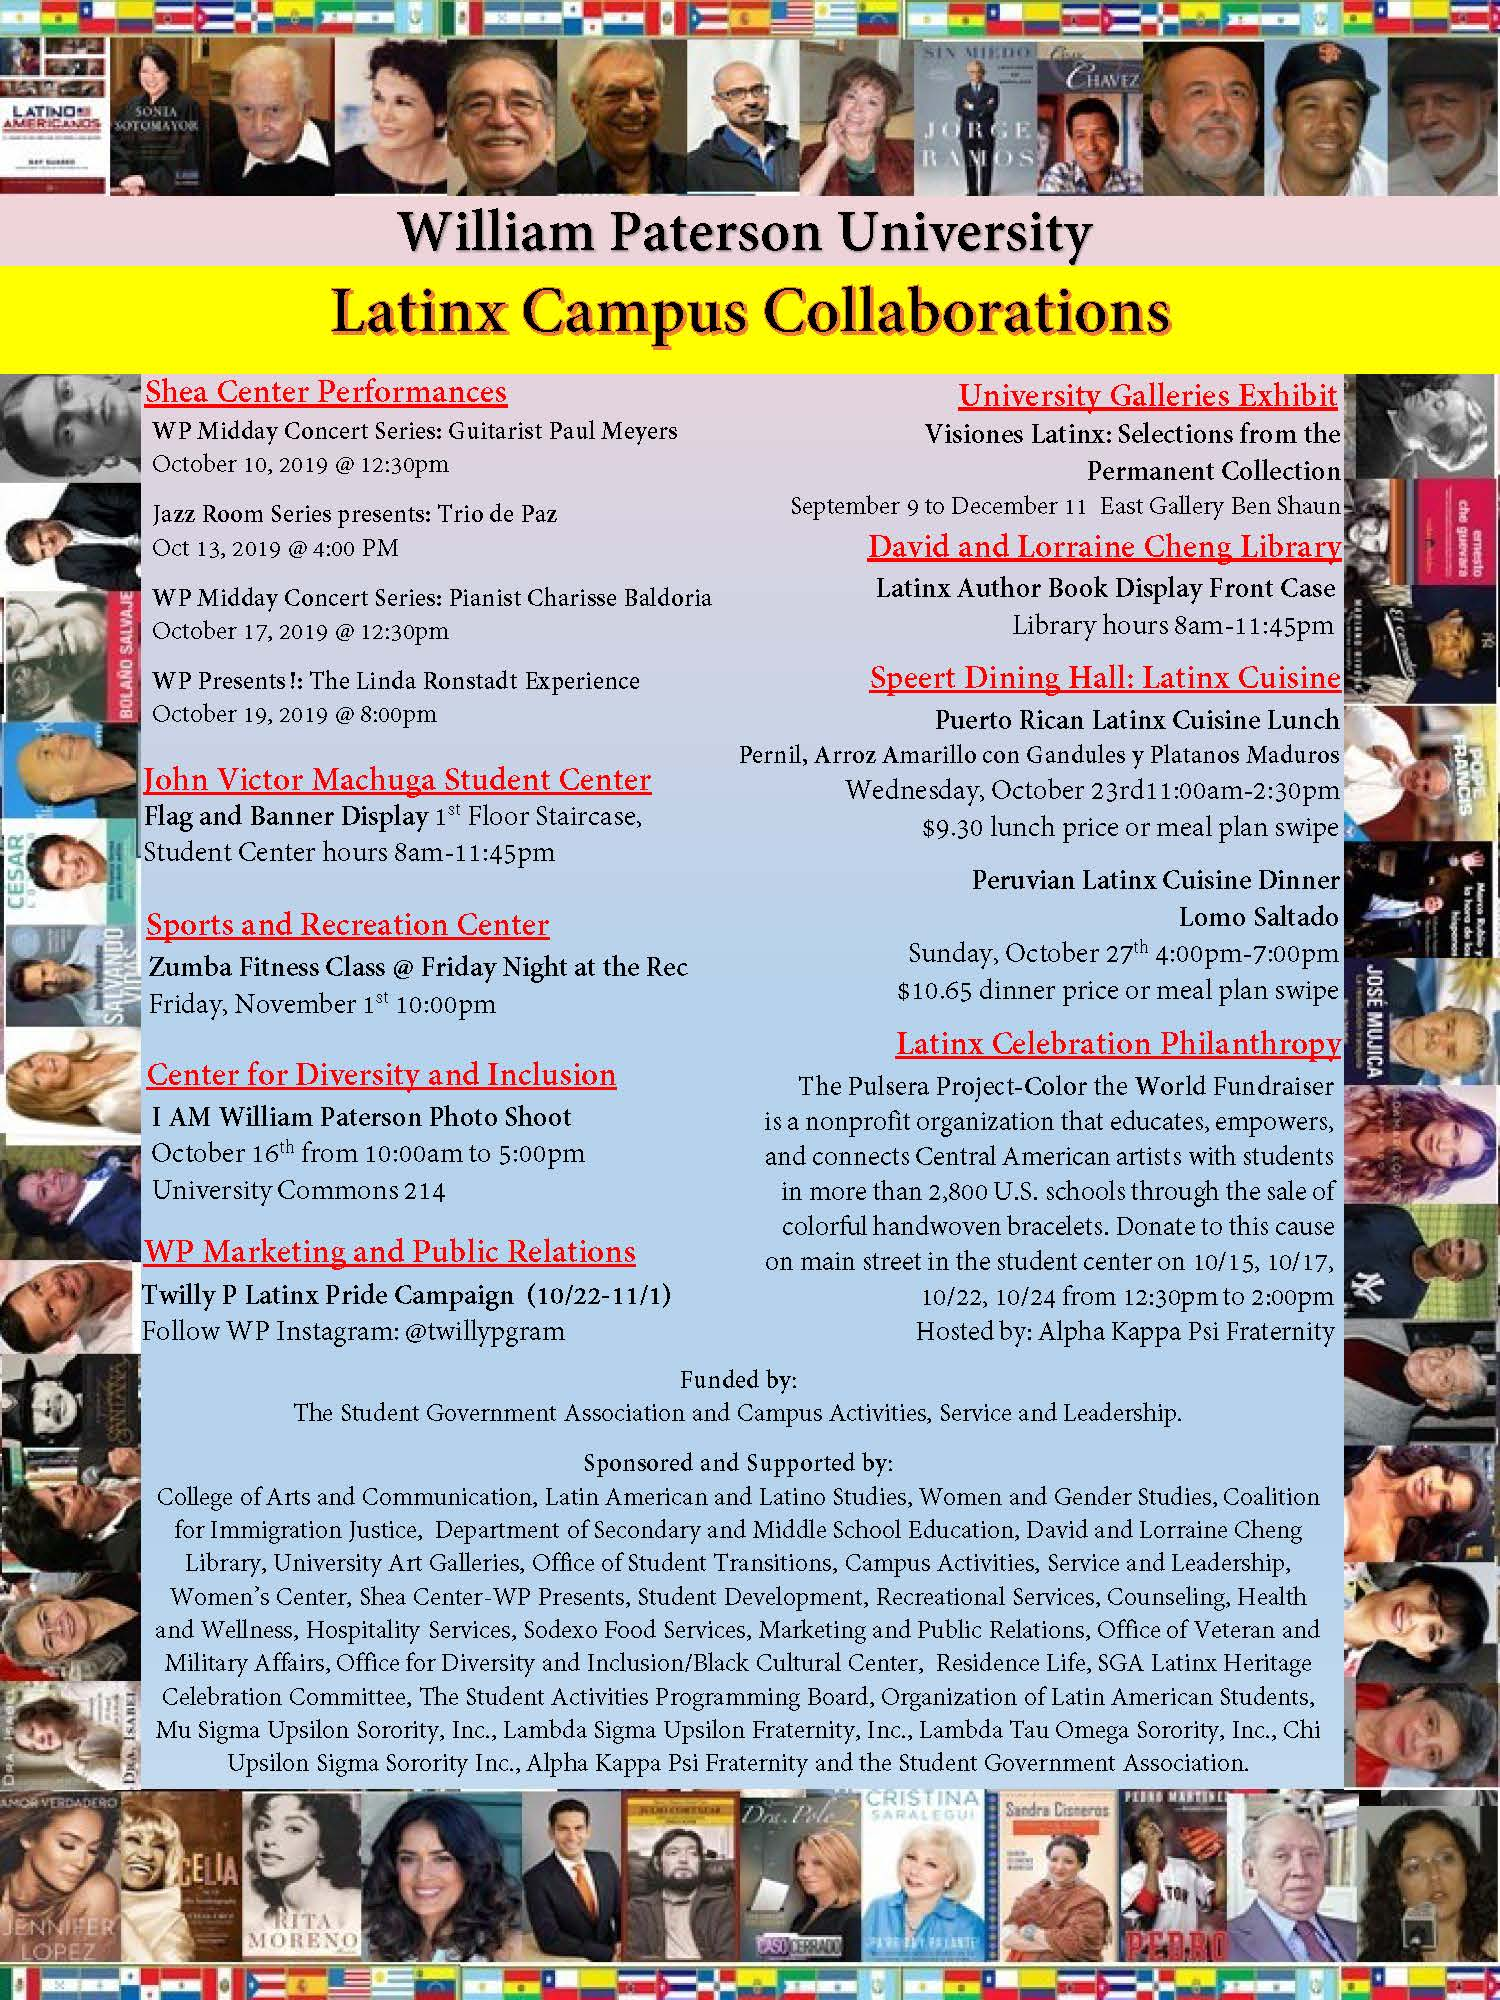 Latinx Heritage Celebration Calendar 2019_Page_2